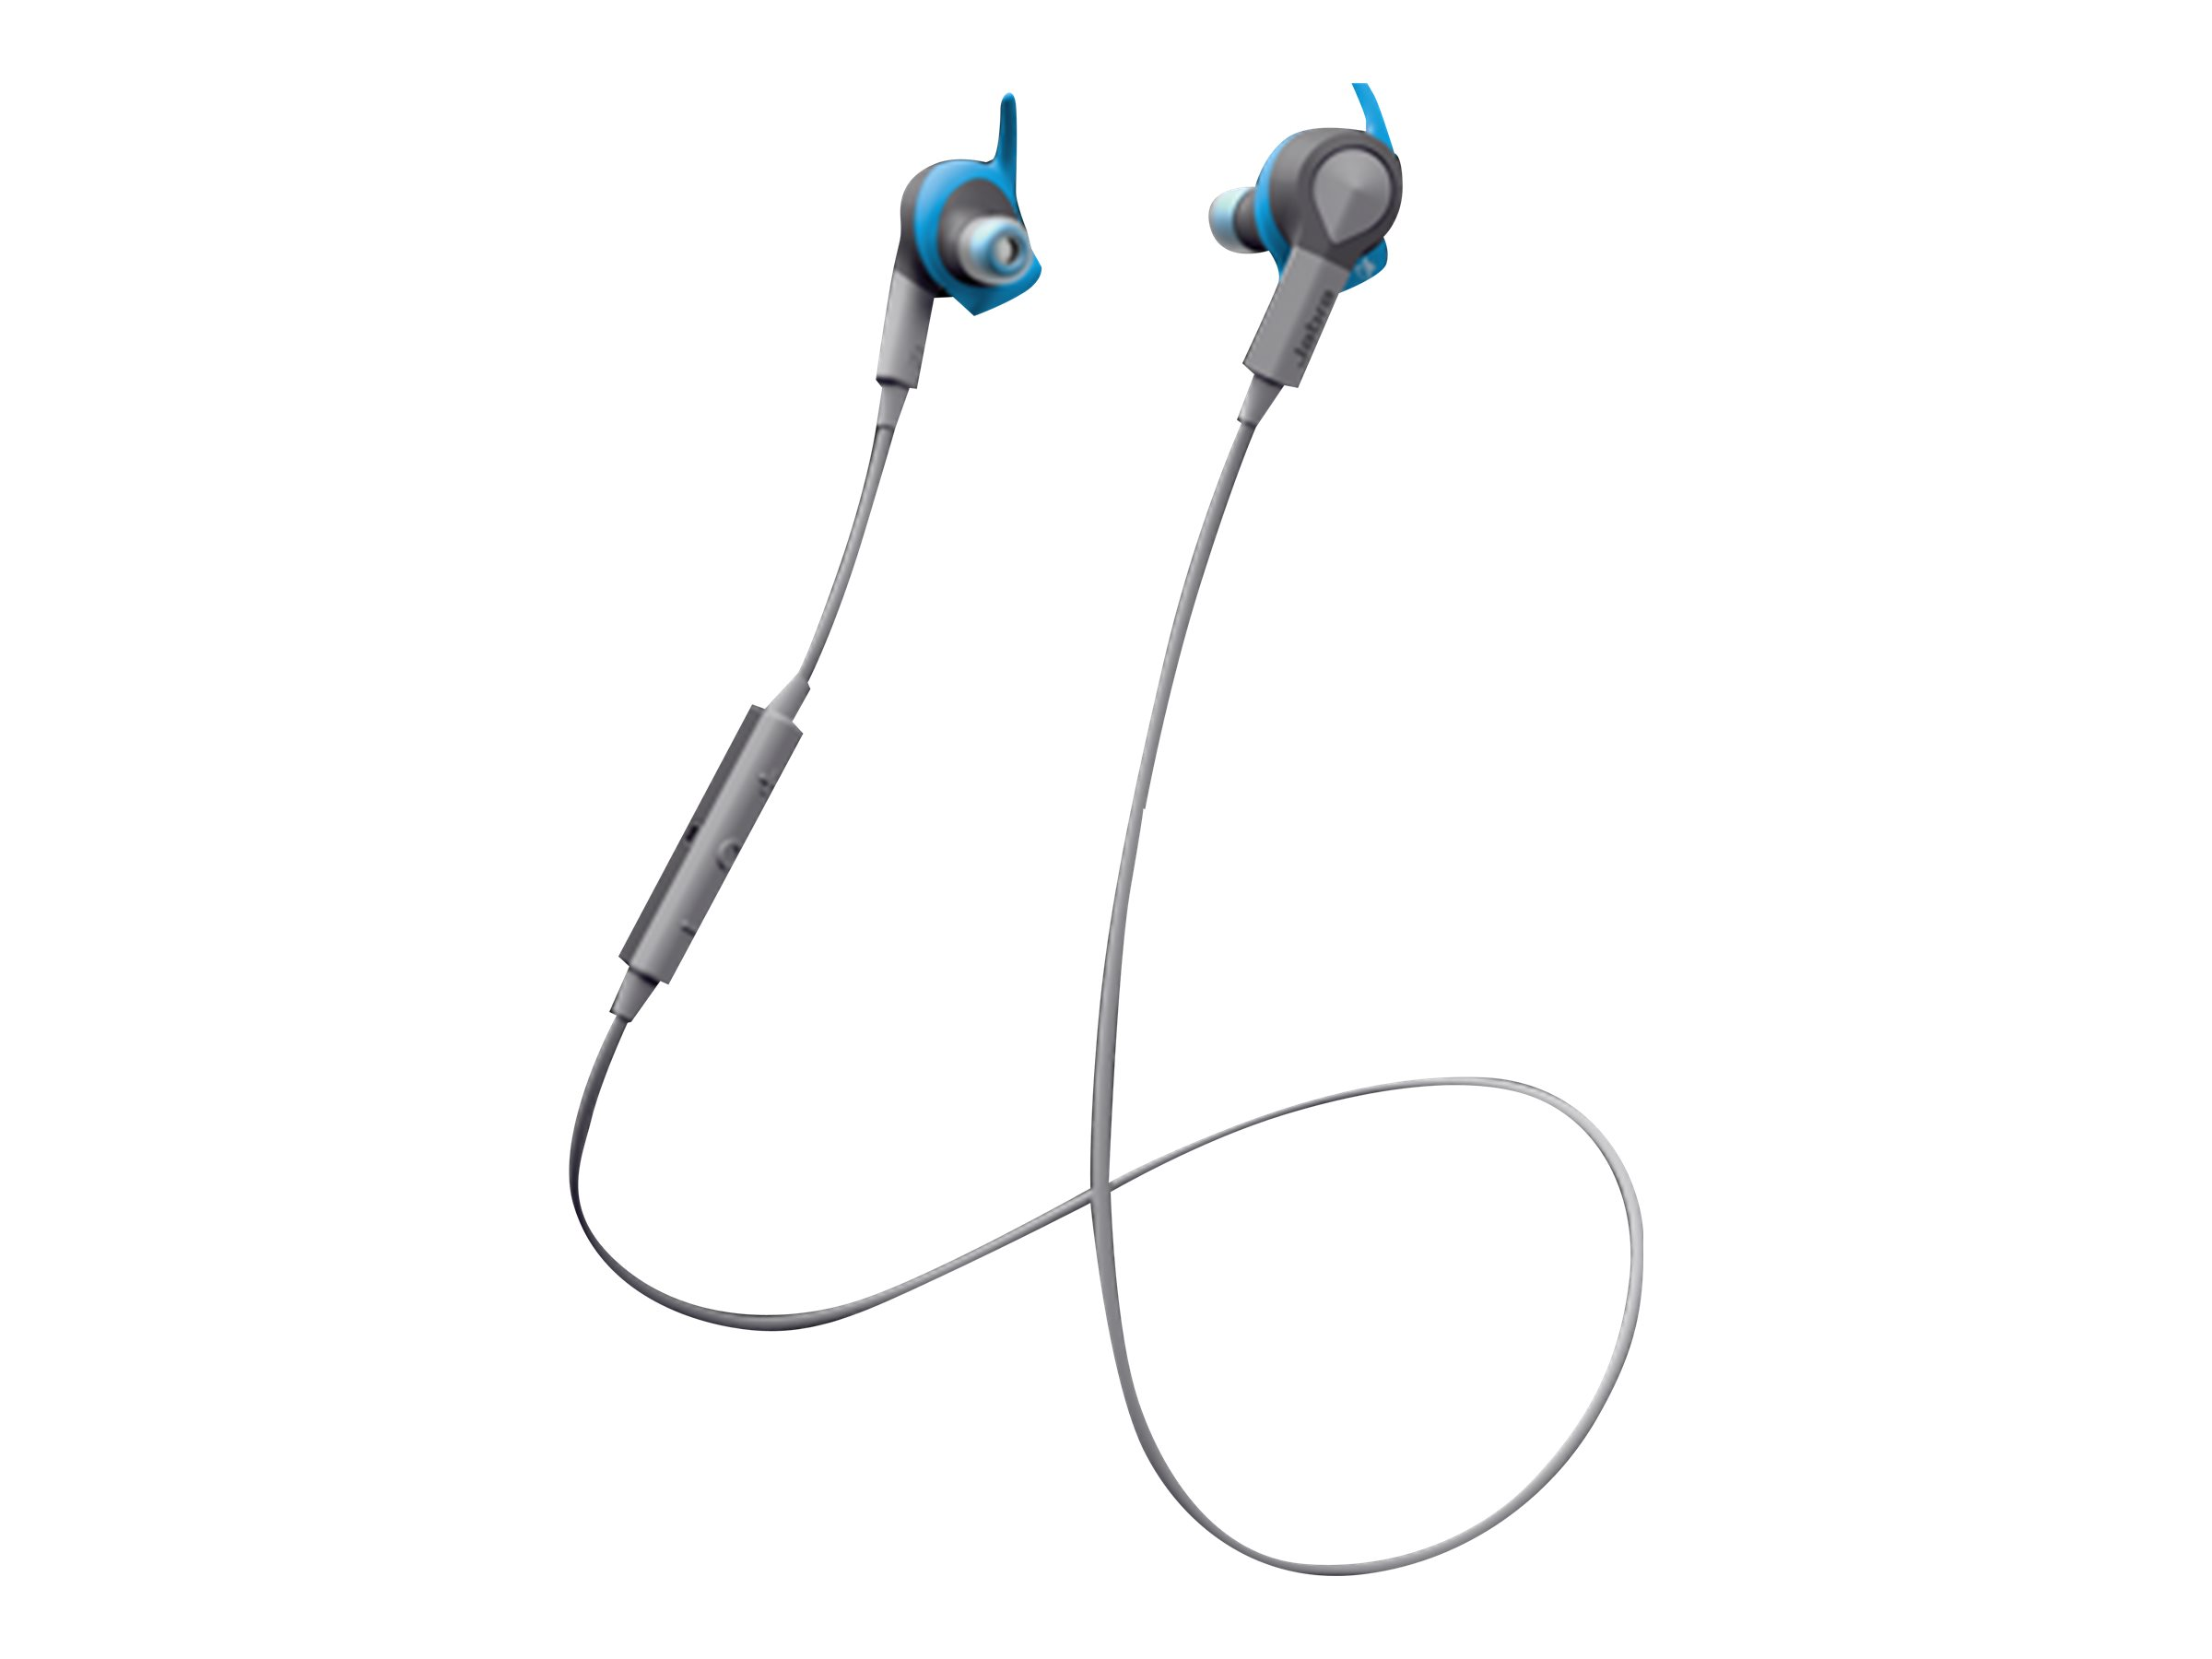 Image for Jabra Sport Coach Special Edition Wireless Bluetooth Stereo Earbuds, Blue from Circuit City